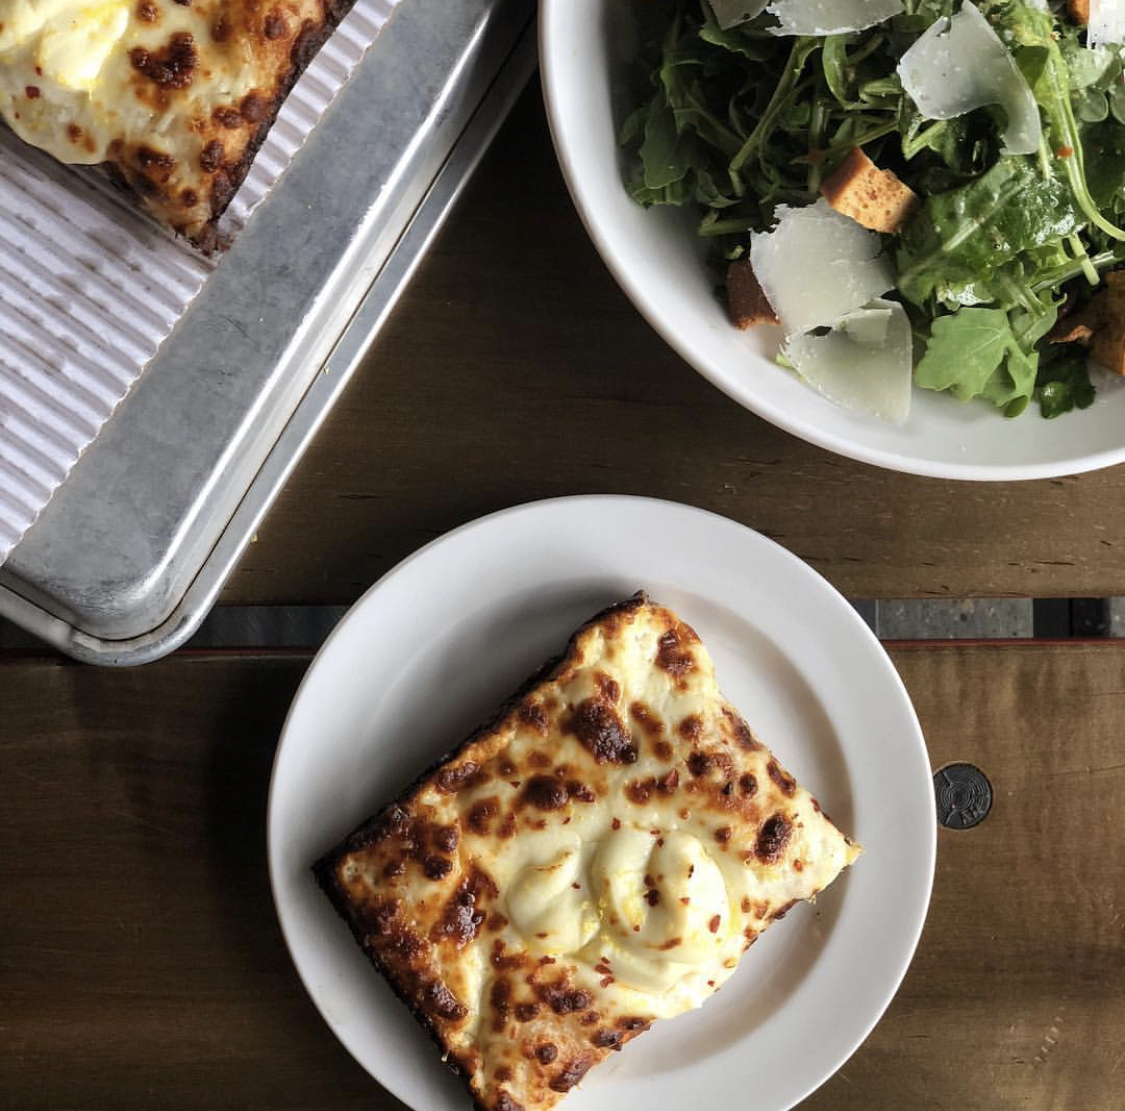 Forthcoming Detroit-Style Pizzeria Prepares to Pop-Up at Fort Street Galley